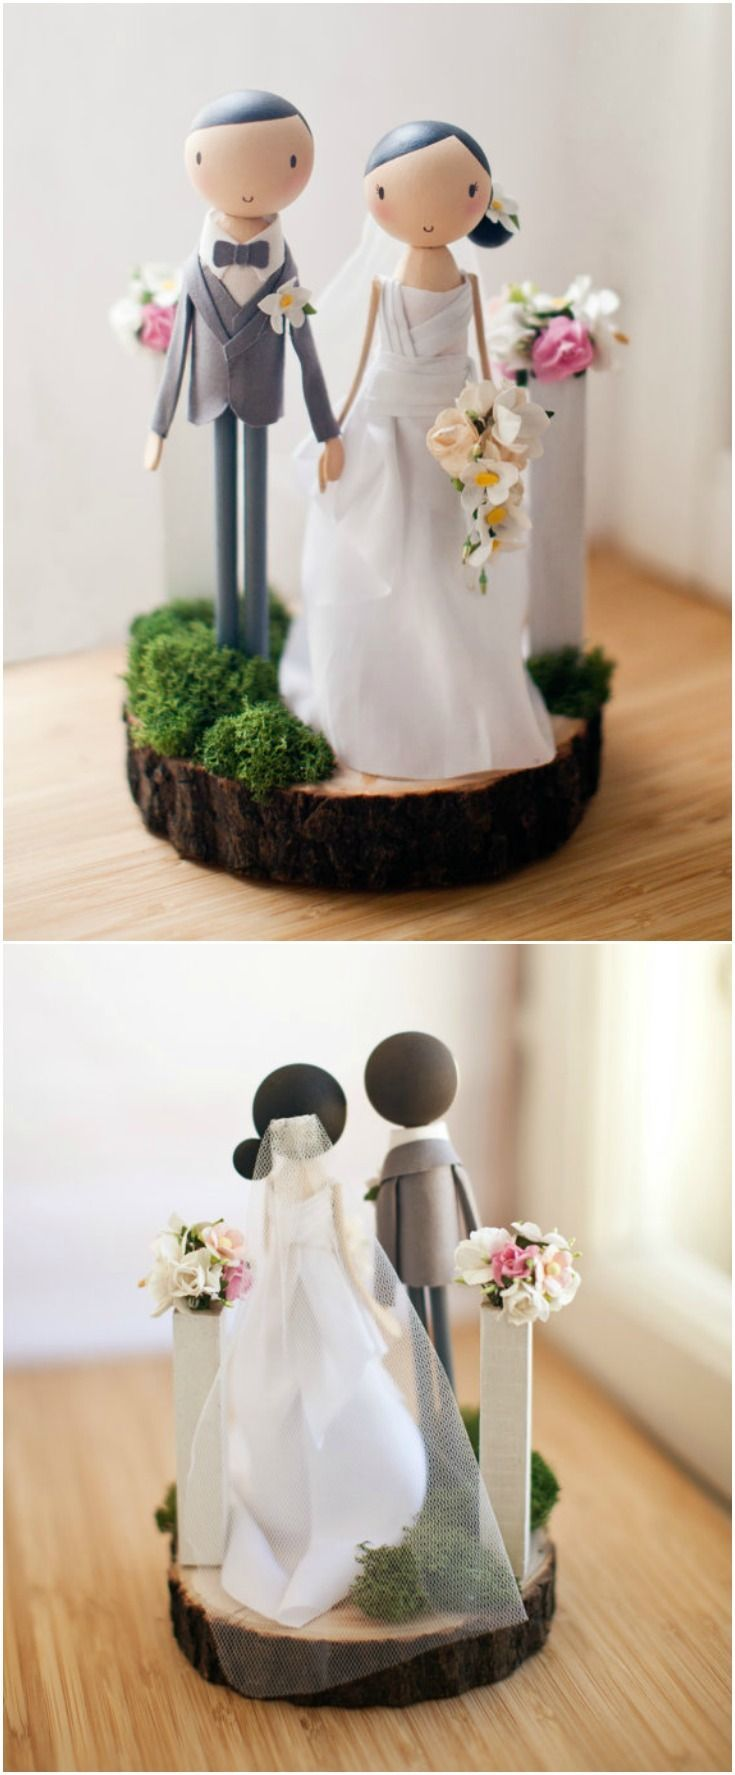 unique wedding cake toppers ideas best 25 unique wedding cake toppers ideas on 21474